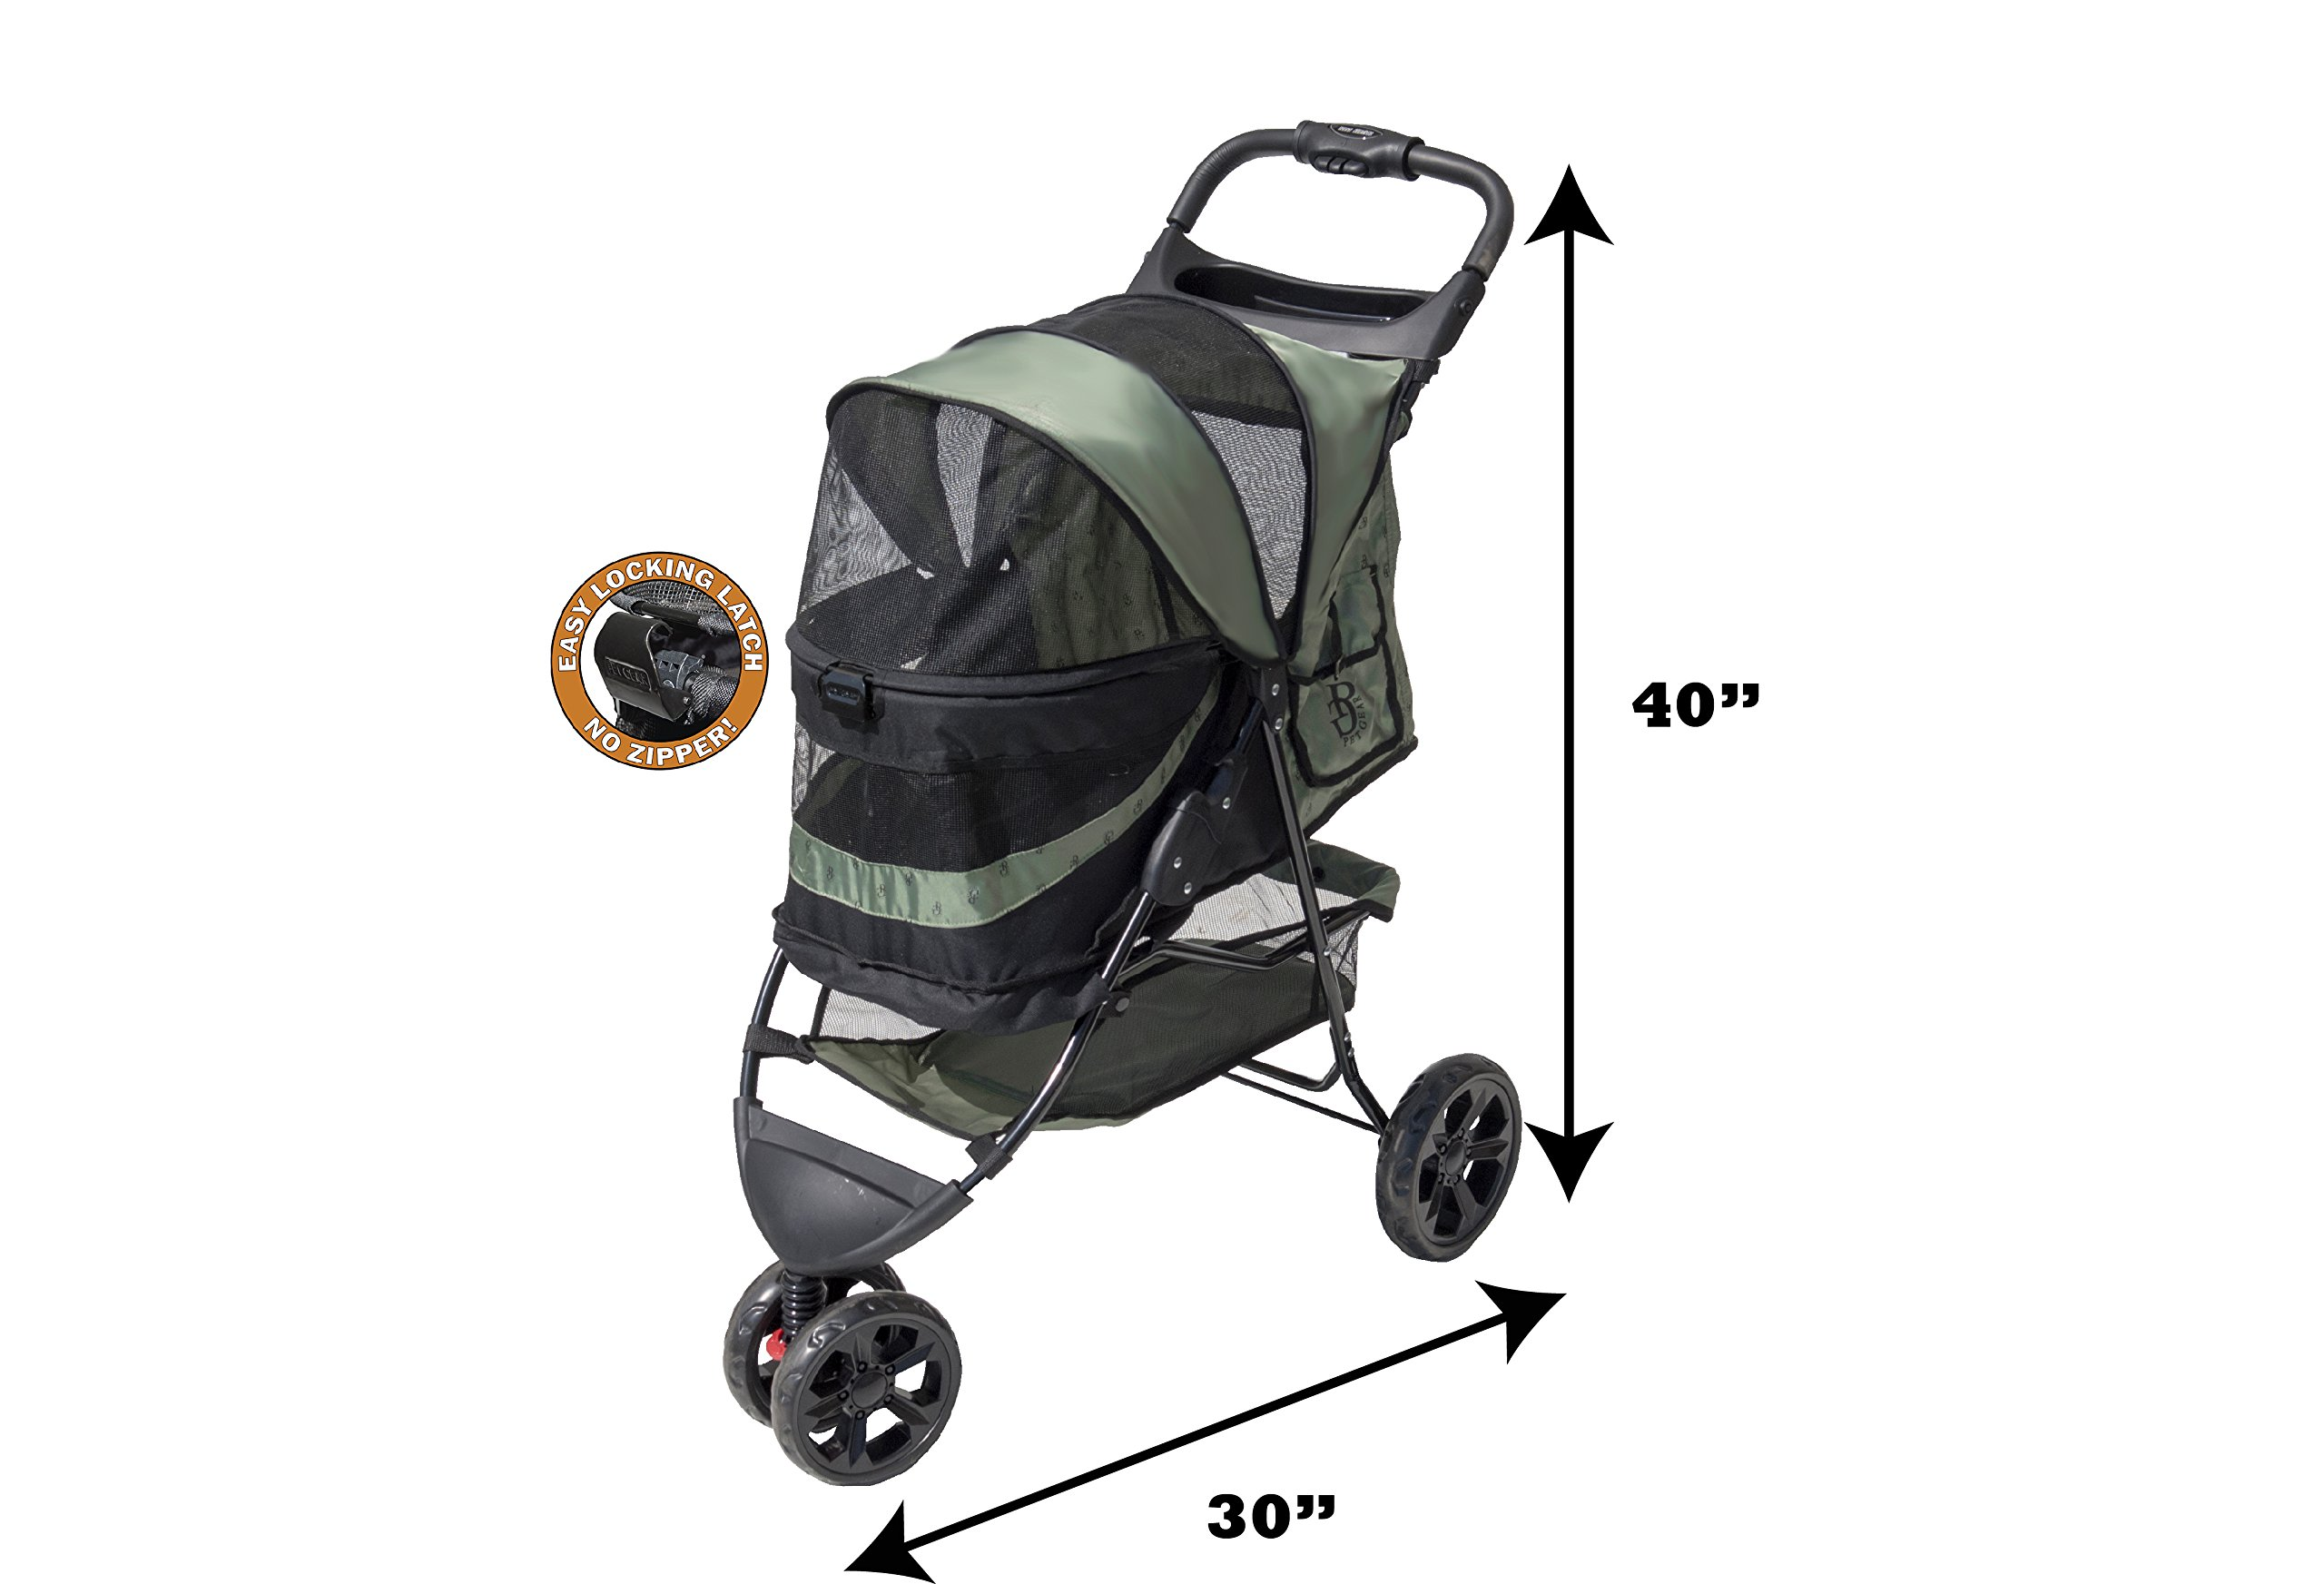 Pet Gear No-Zip Special Edition Pet Stroller, Zipperless Entry, Sage by Vermont Juvenile MFG DBA (Pet Gear) (Image #6)